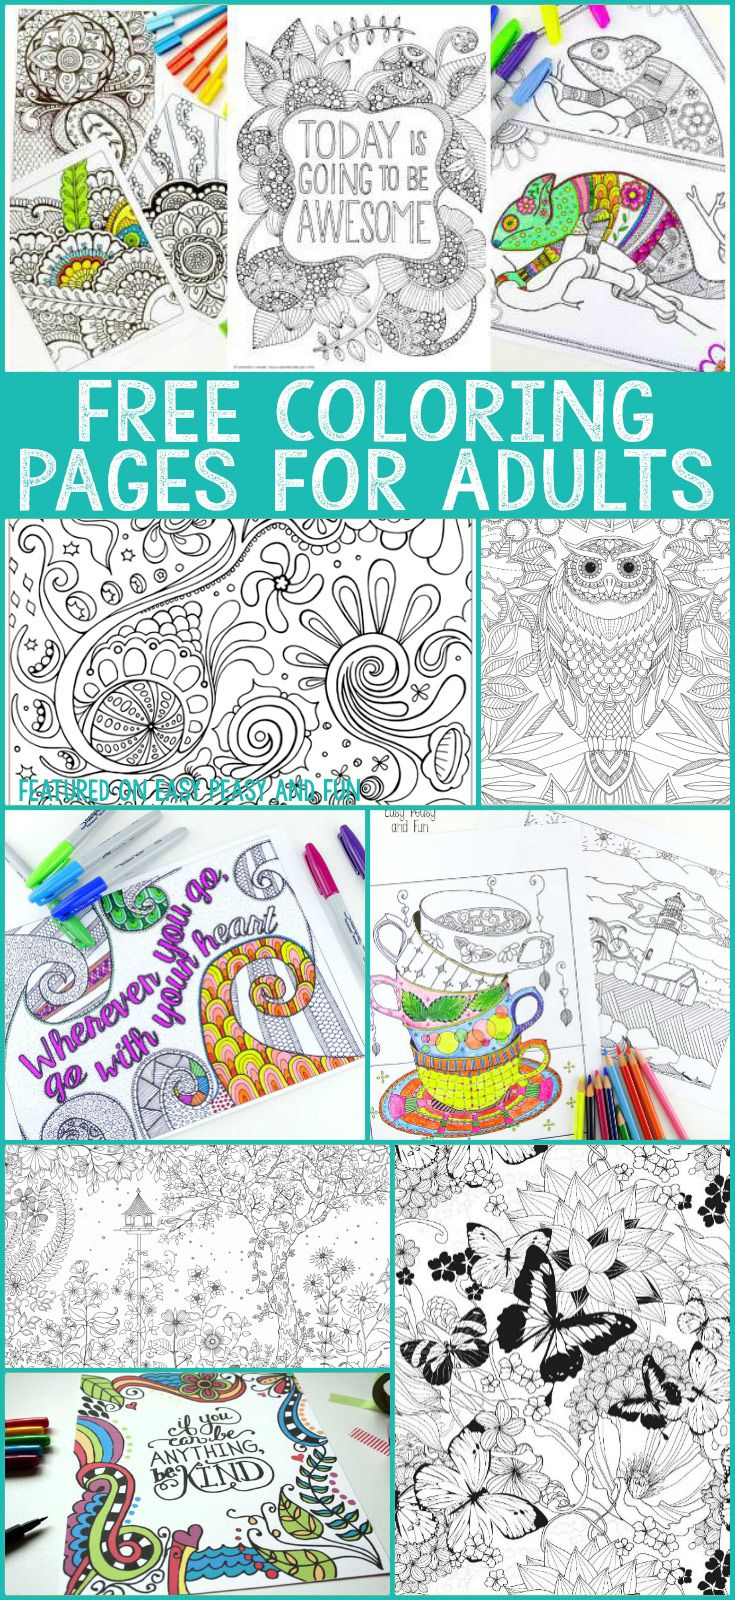 A Whole Bunch Of Gorgeous And Free Coloring Pages For Adults As Grown Ups Should Have Some Fun Too